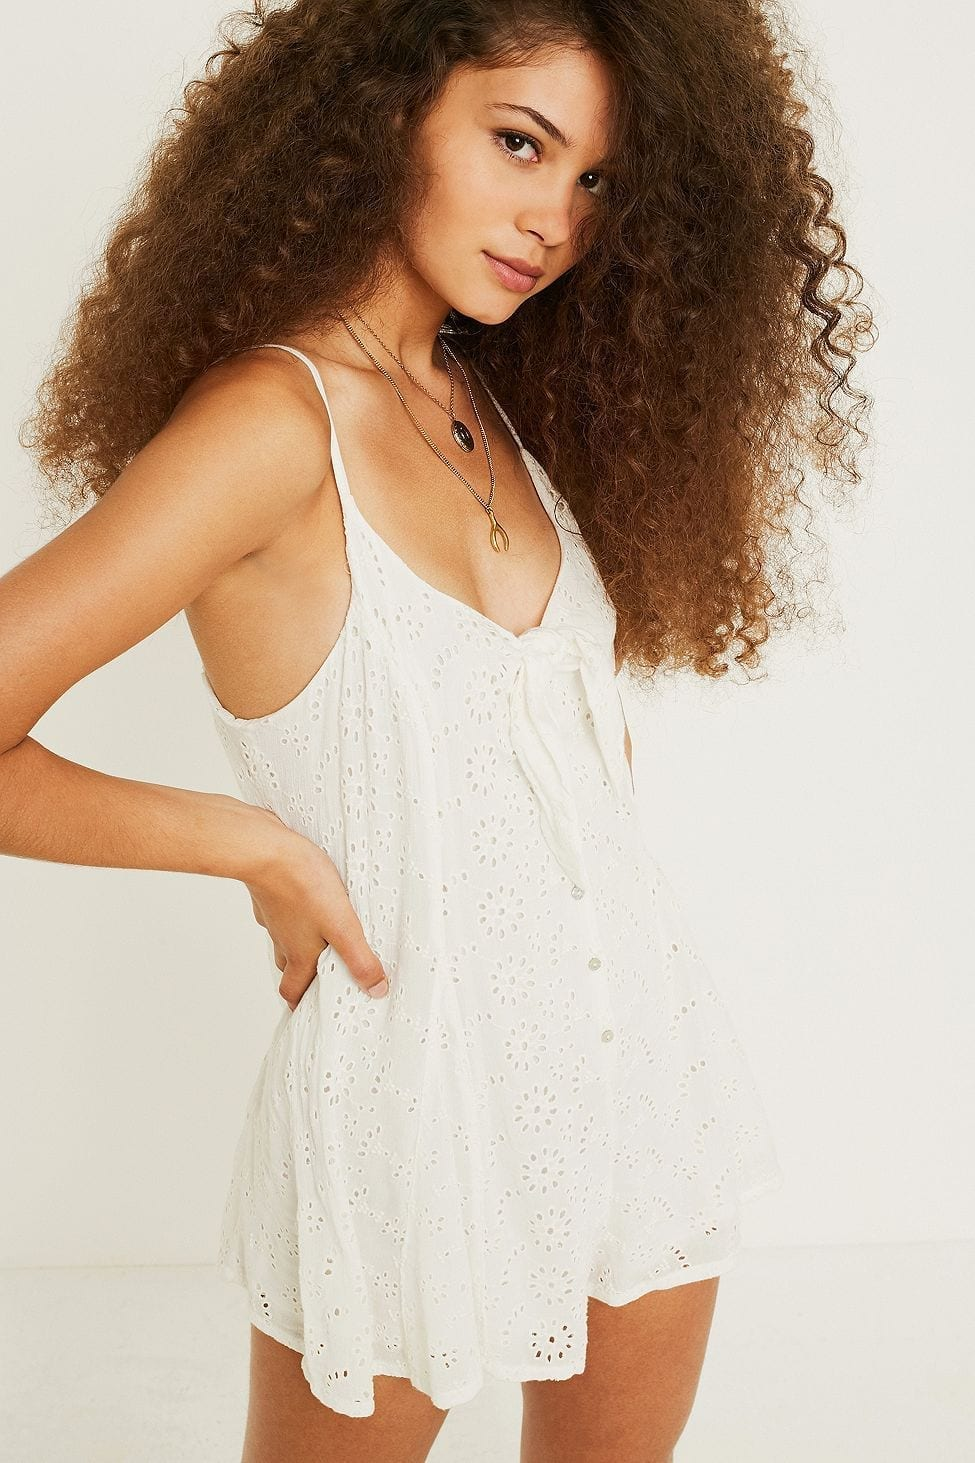 URBAN OUTFITTERS Nova Eyelet Tie-Front White Romper